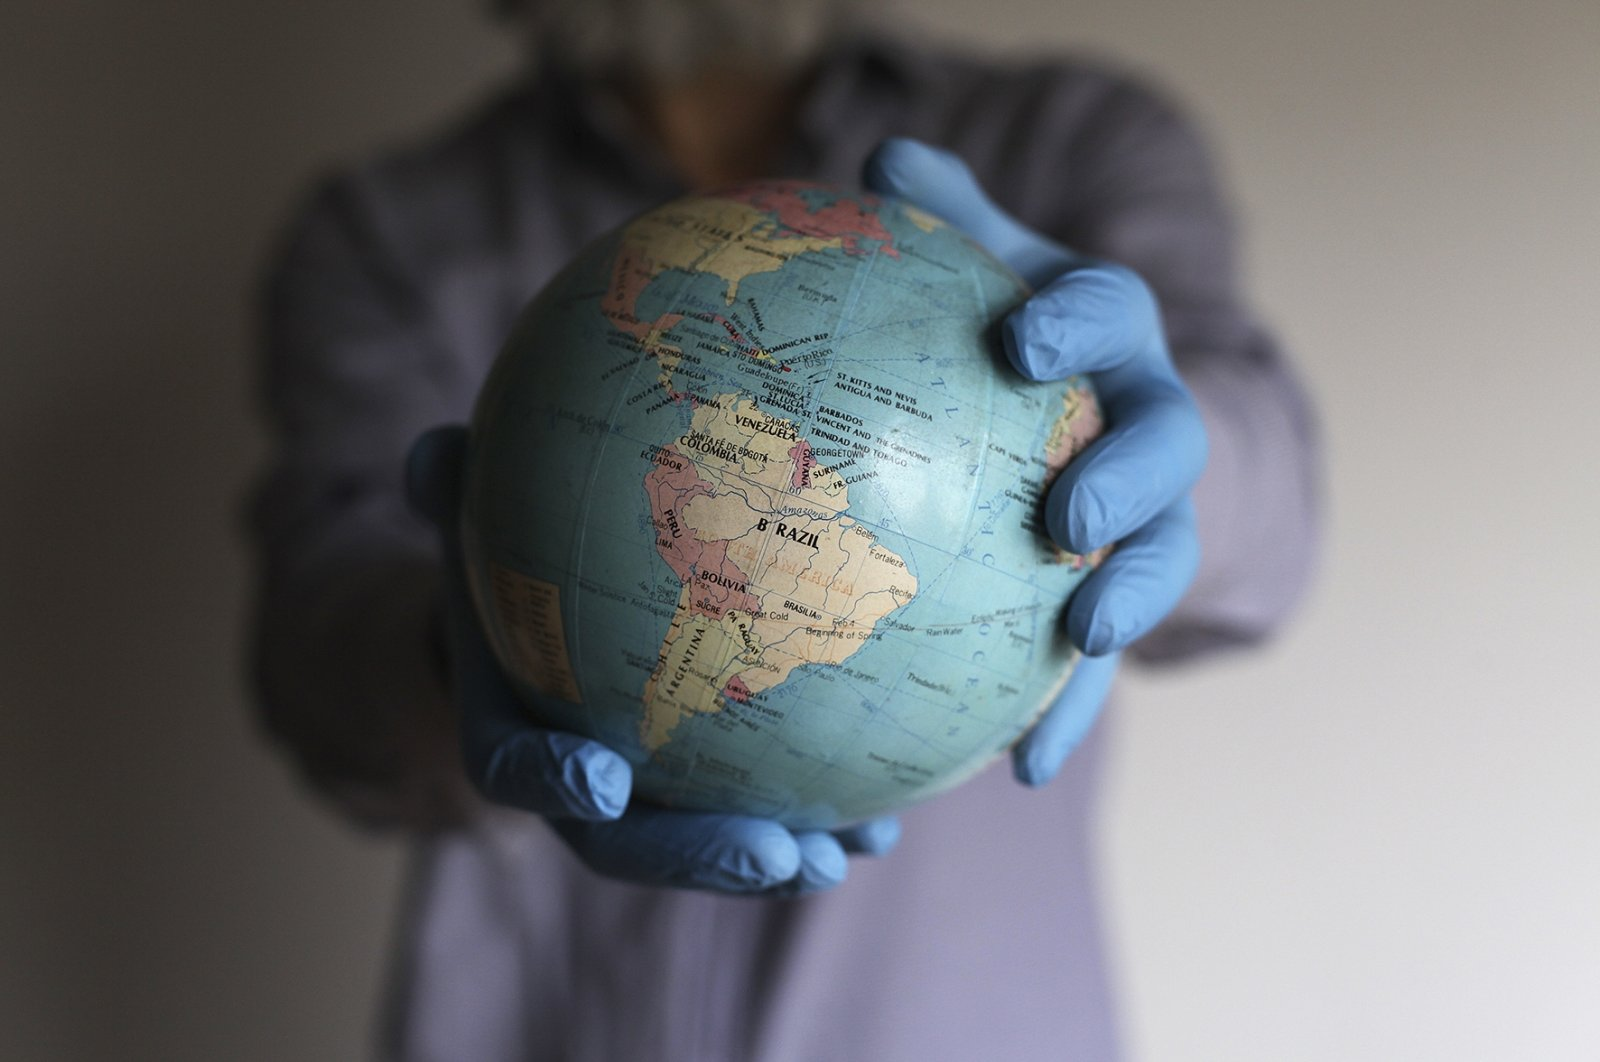 A man wearing medical gloves holds a globe in his hands, Buenos Aires, Argentina, Aug. 6, 2020. (Getty Images)